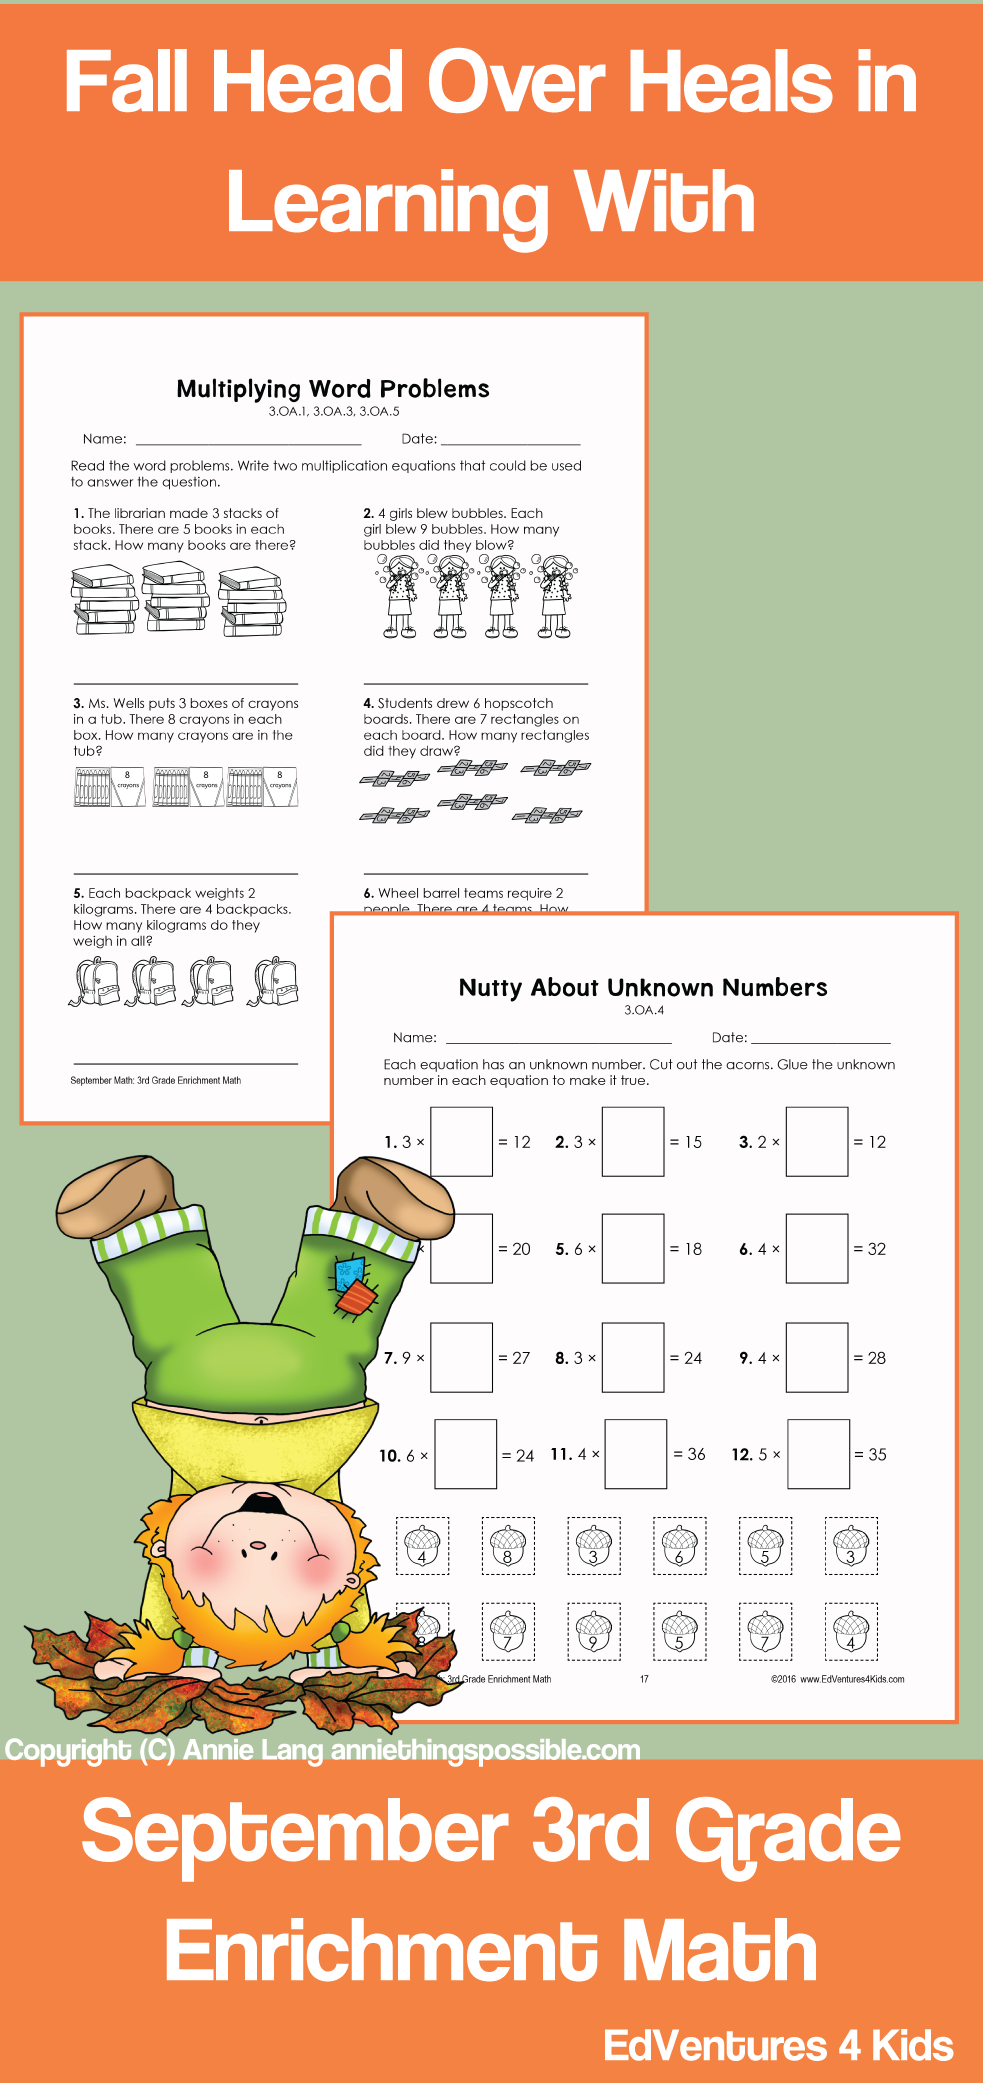 medium resolution of September Enrichment Math for 3rd Grade is a collection of 15 challenging